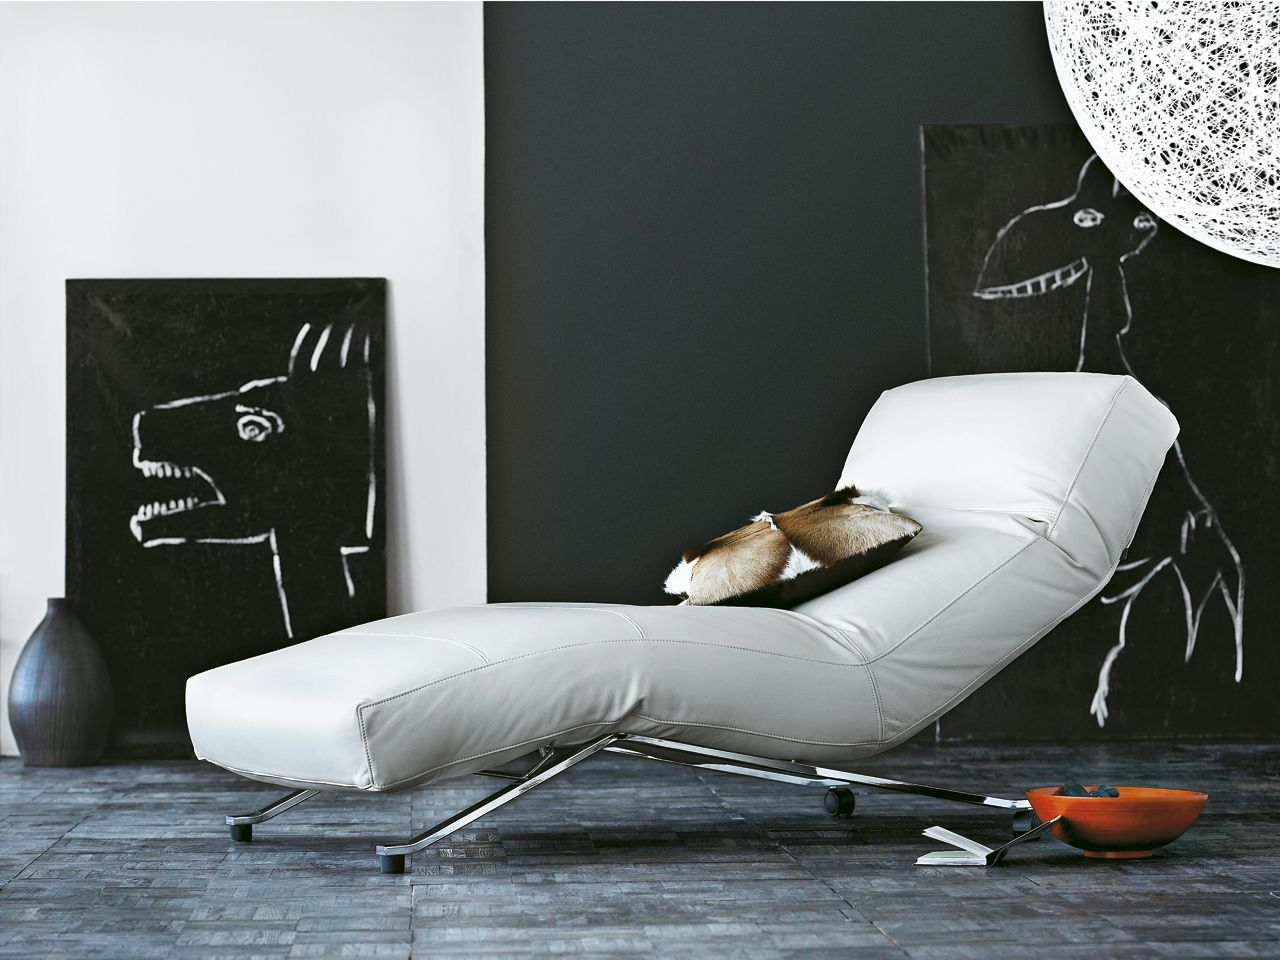 Merveilleux CONTROL Is The Ultimate Reclining Chair. Rest, Read Or Watch TV? Just Enjoy  Every Little Minute.